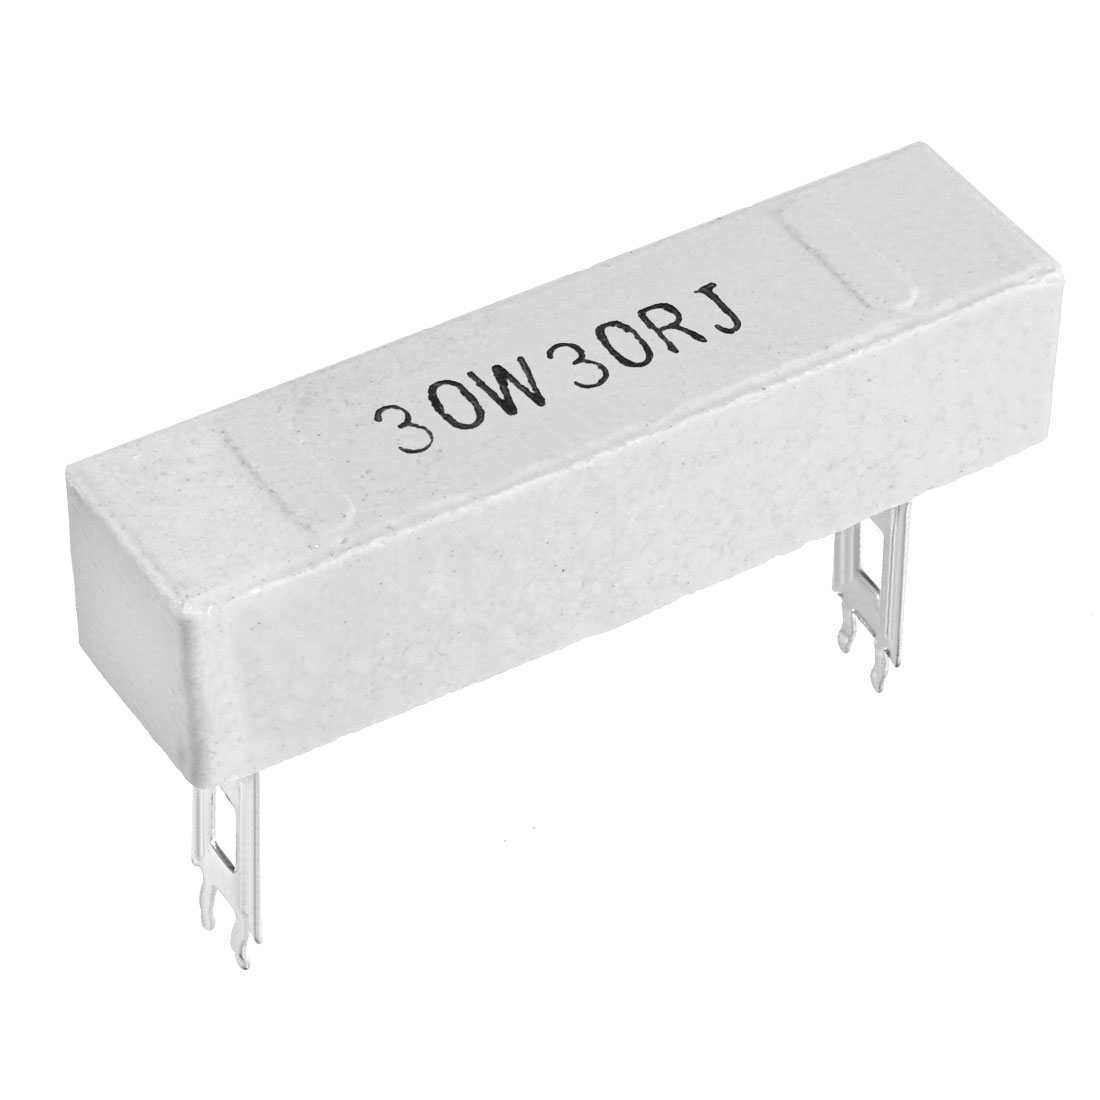 30W 30 Ohm Power Resistor Ceramic Cement Resistor Axial Lead White